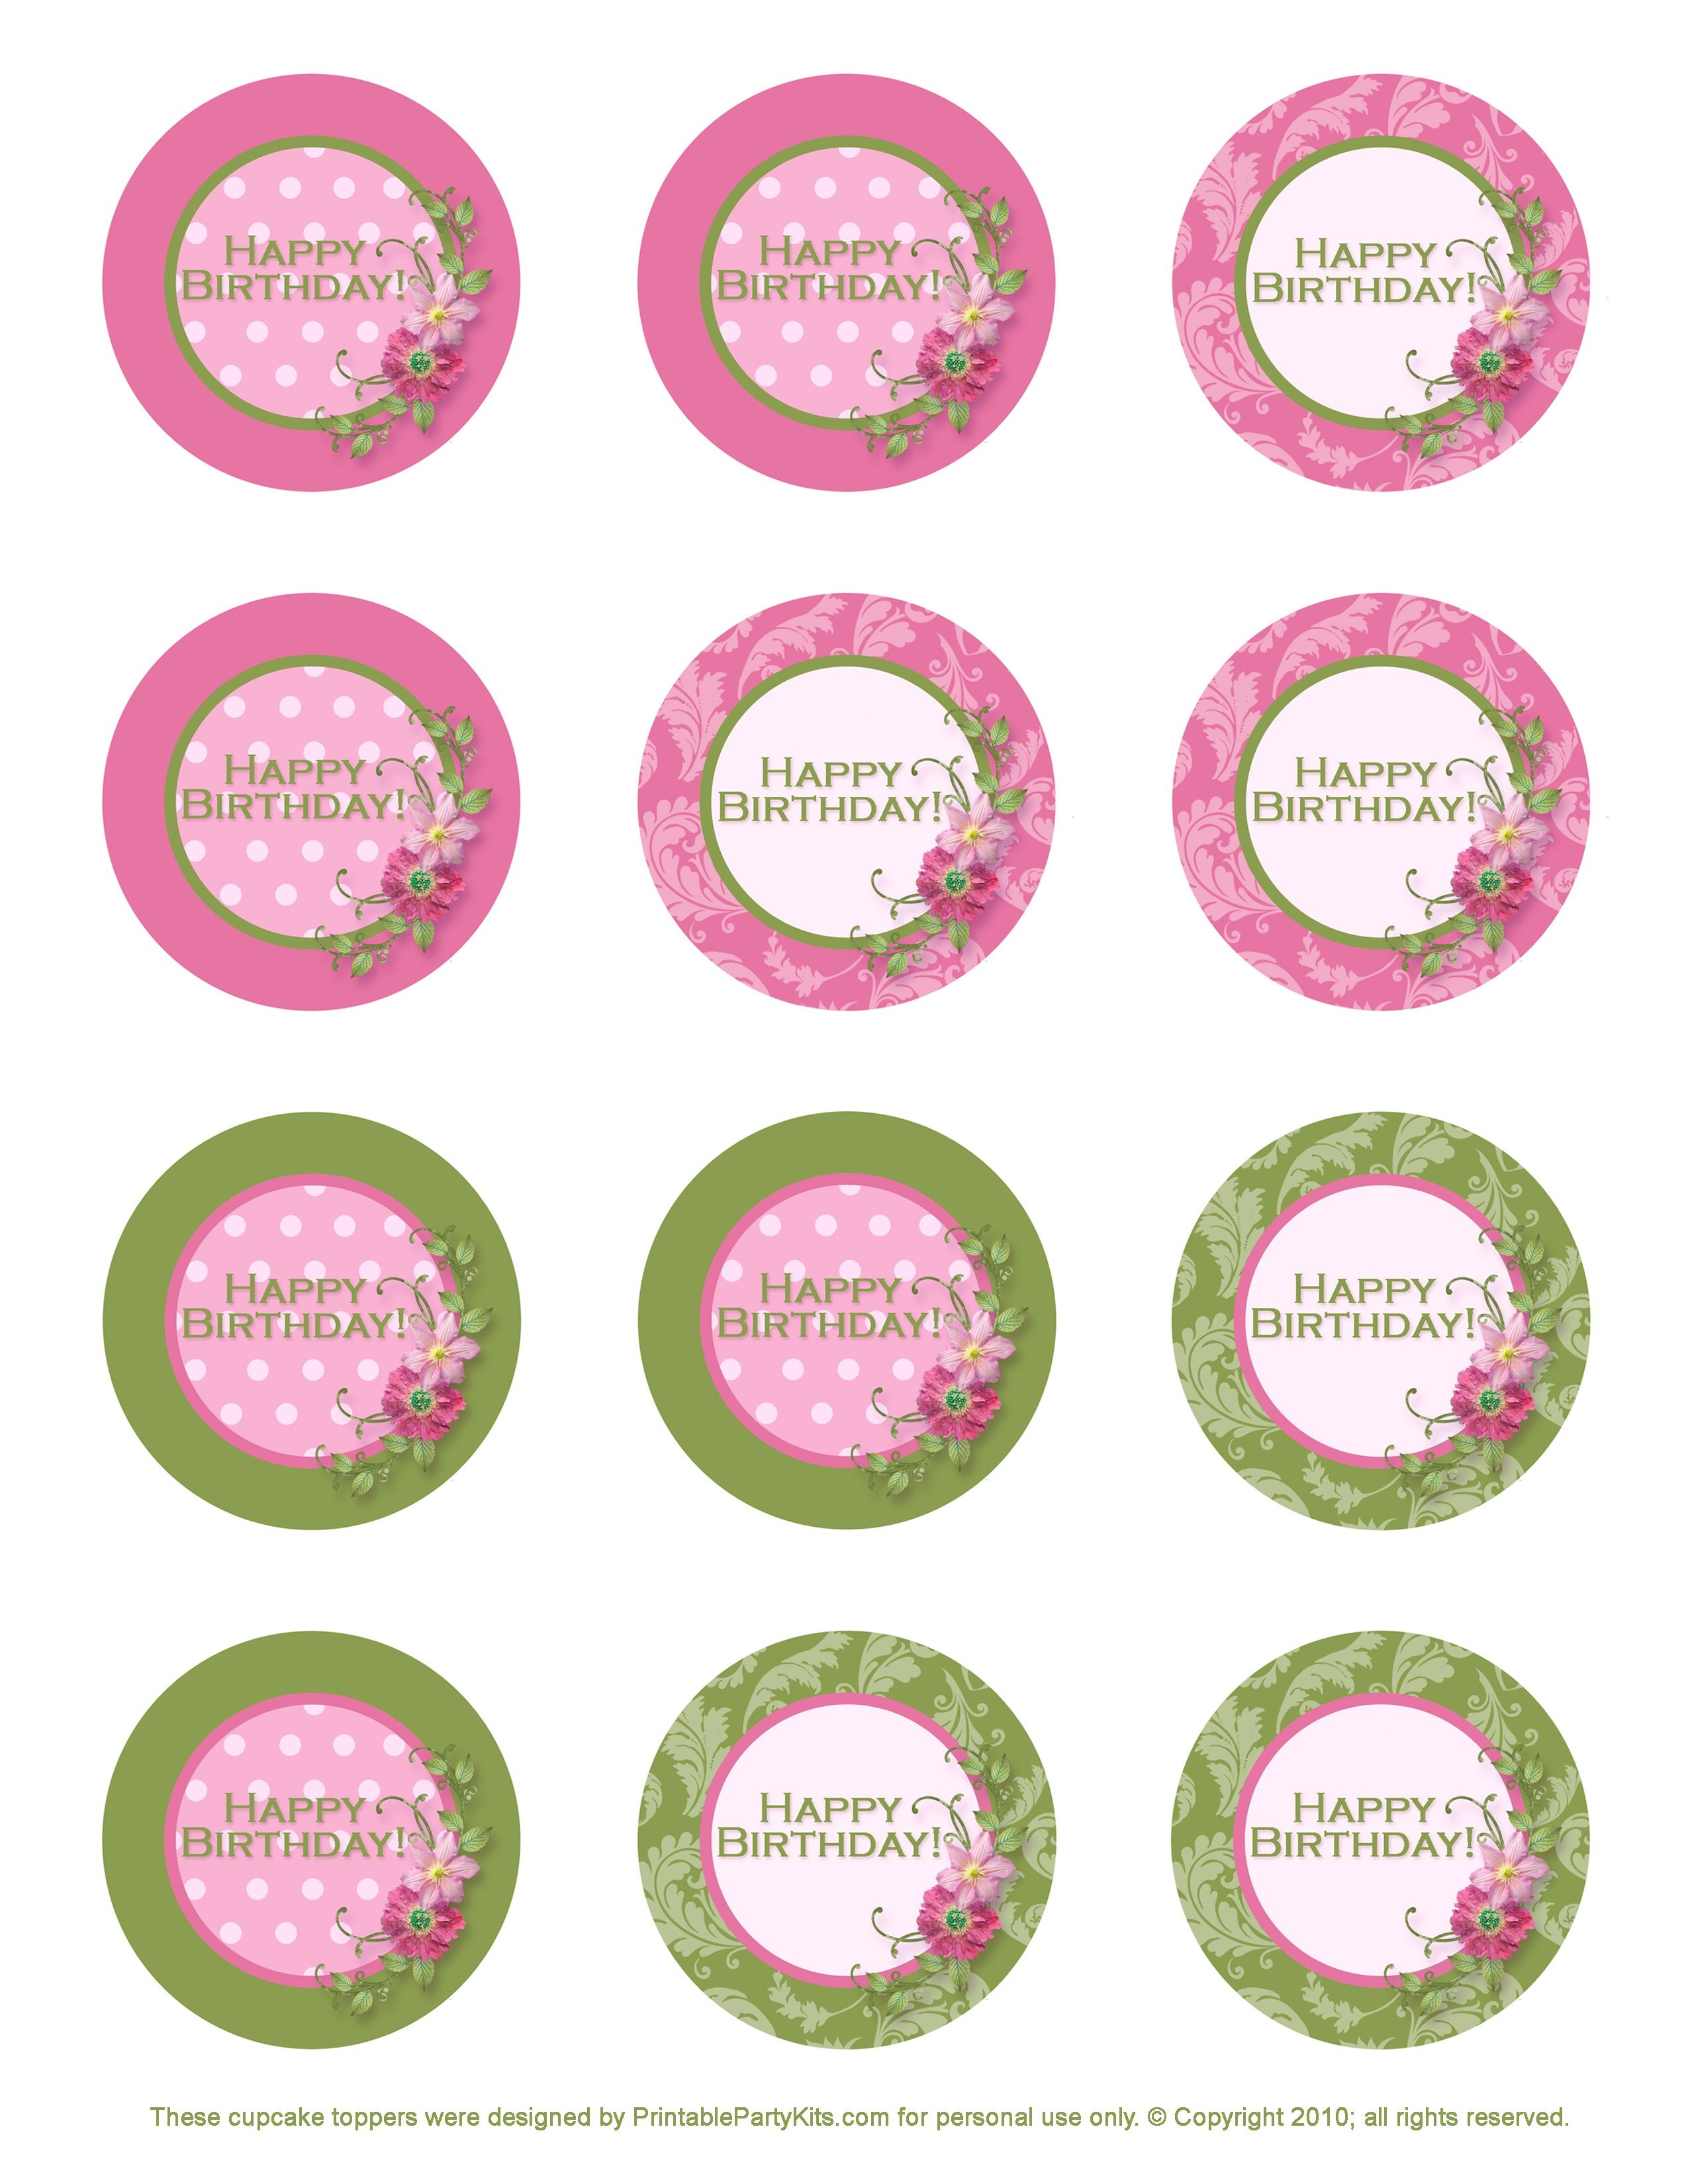 Free Printable Birthday Cupcake Toppers | Crafts | Birthday Cupcakes - Baptism Cupcake Toppers Printable Free